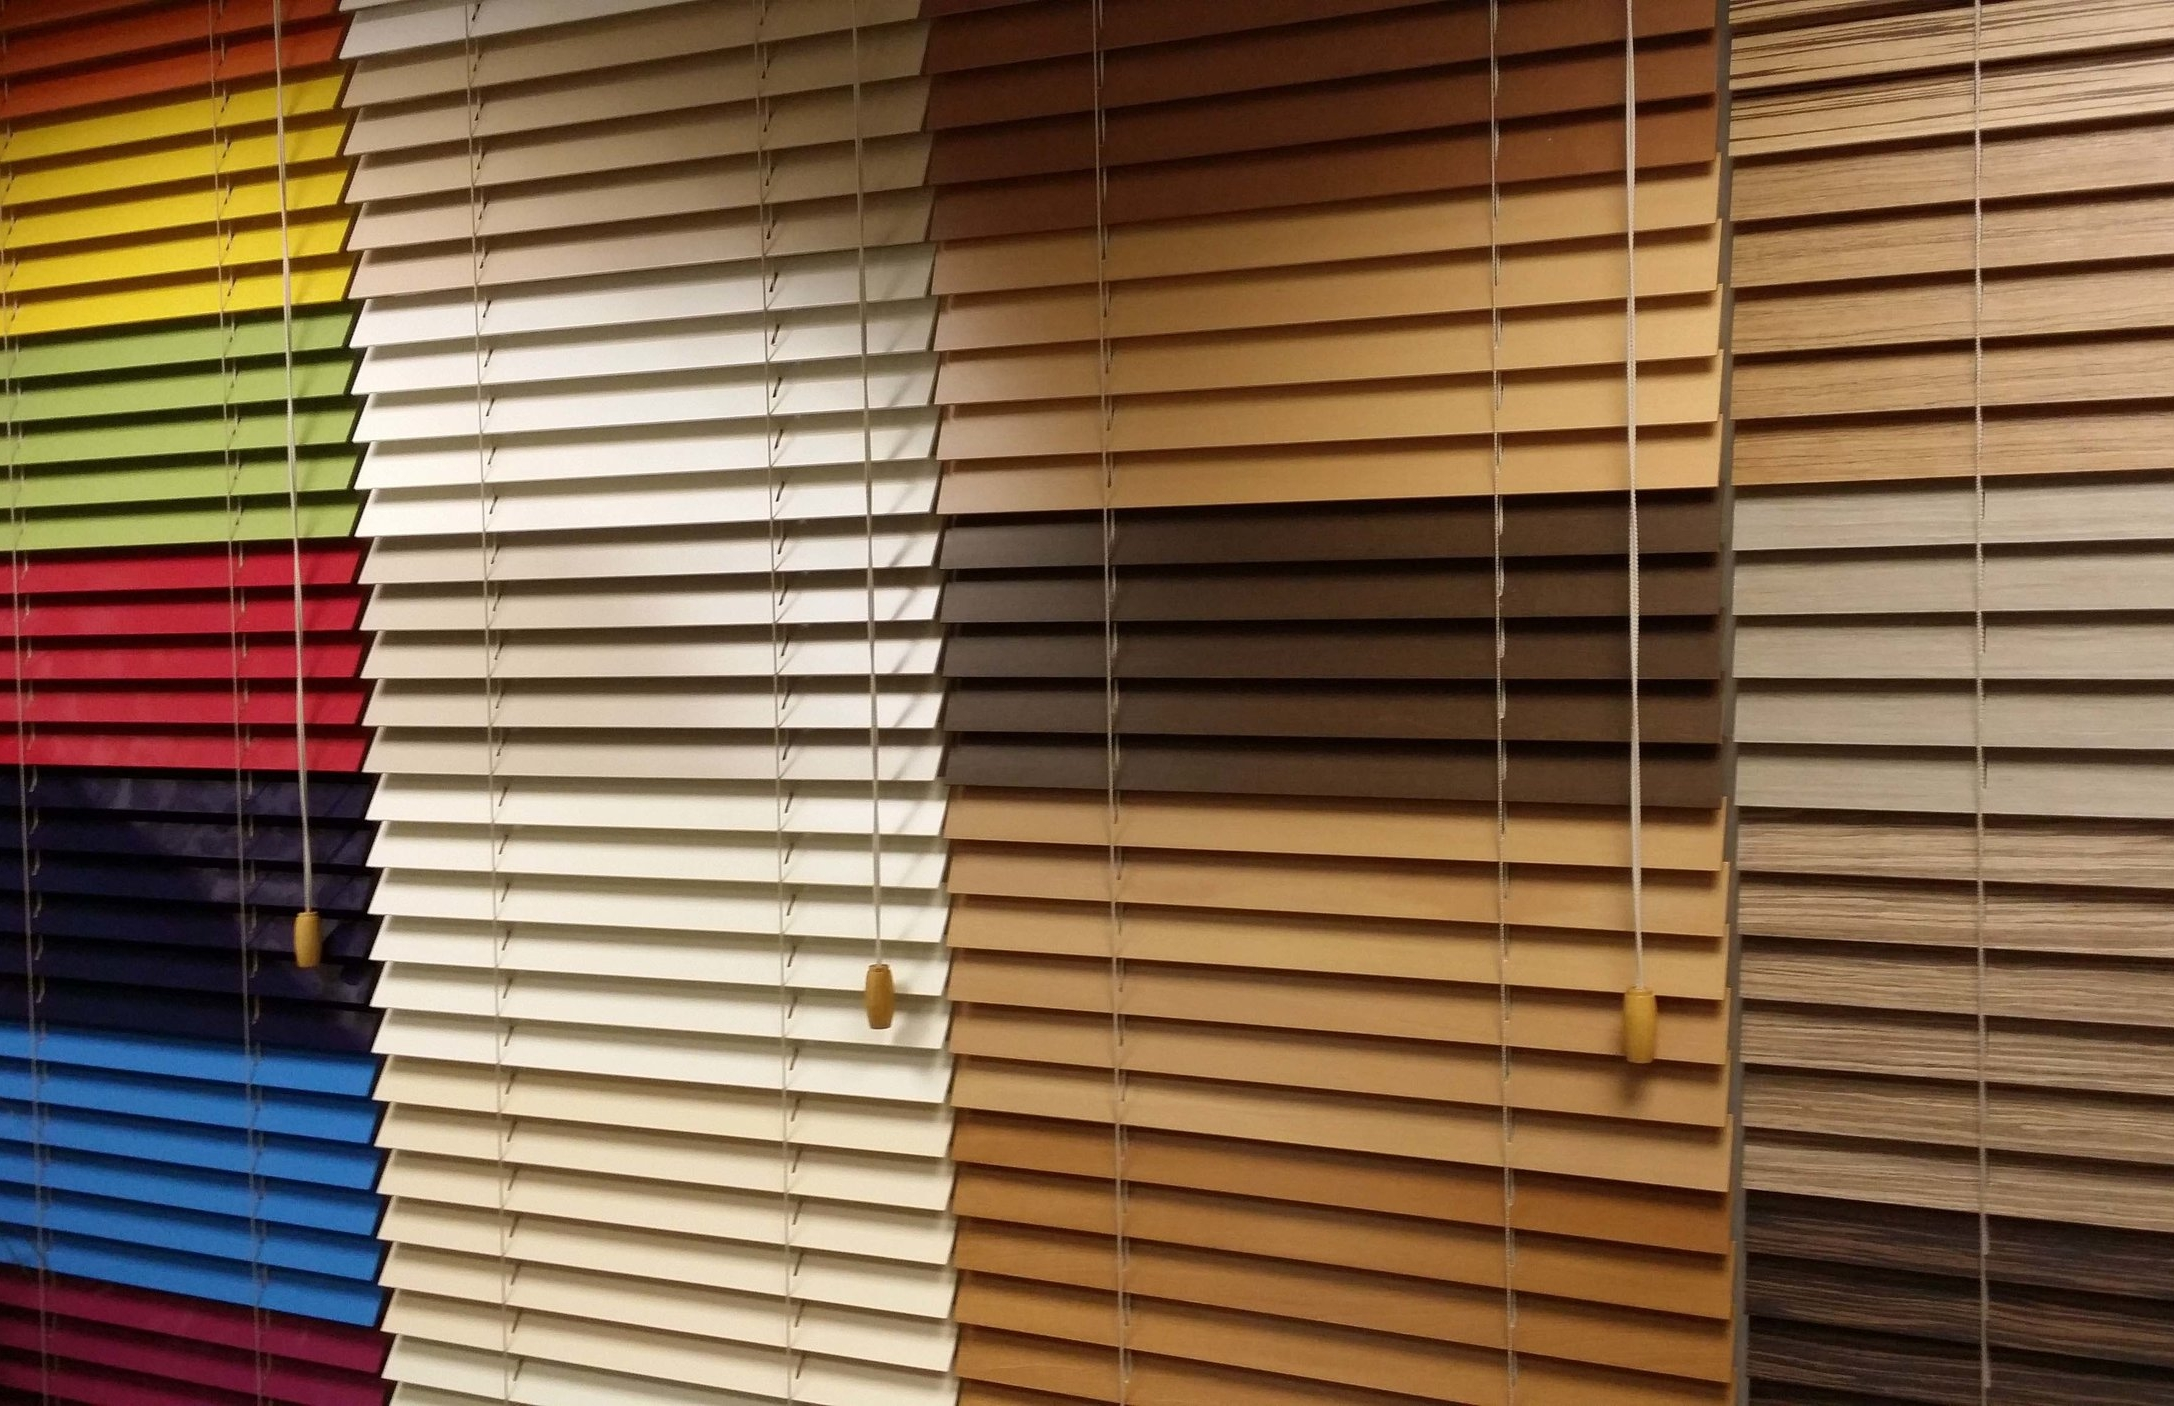 About-Us-Window-Blind-Samples-Outstanding-.jpg